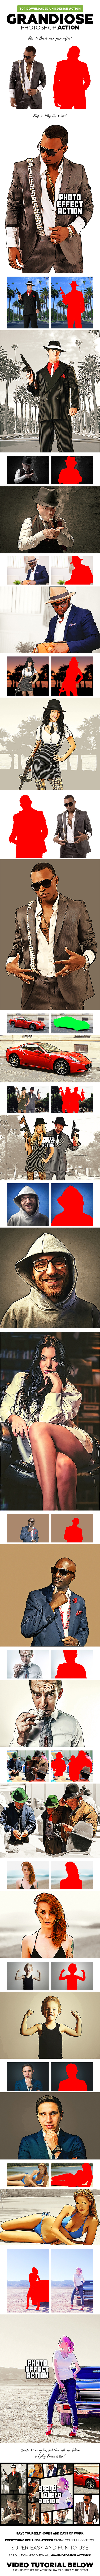 Grandiose Photoshop Action - Photo Effects Actions